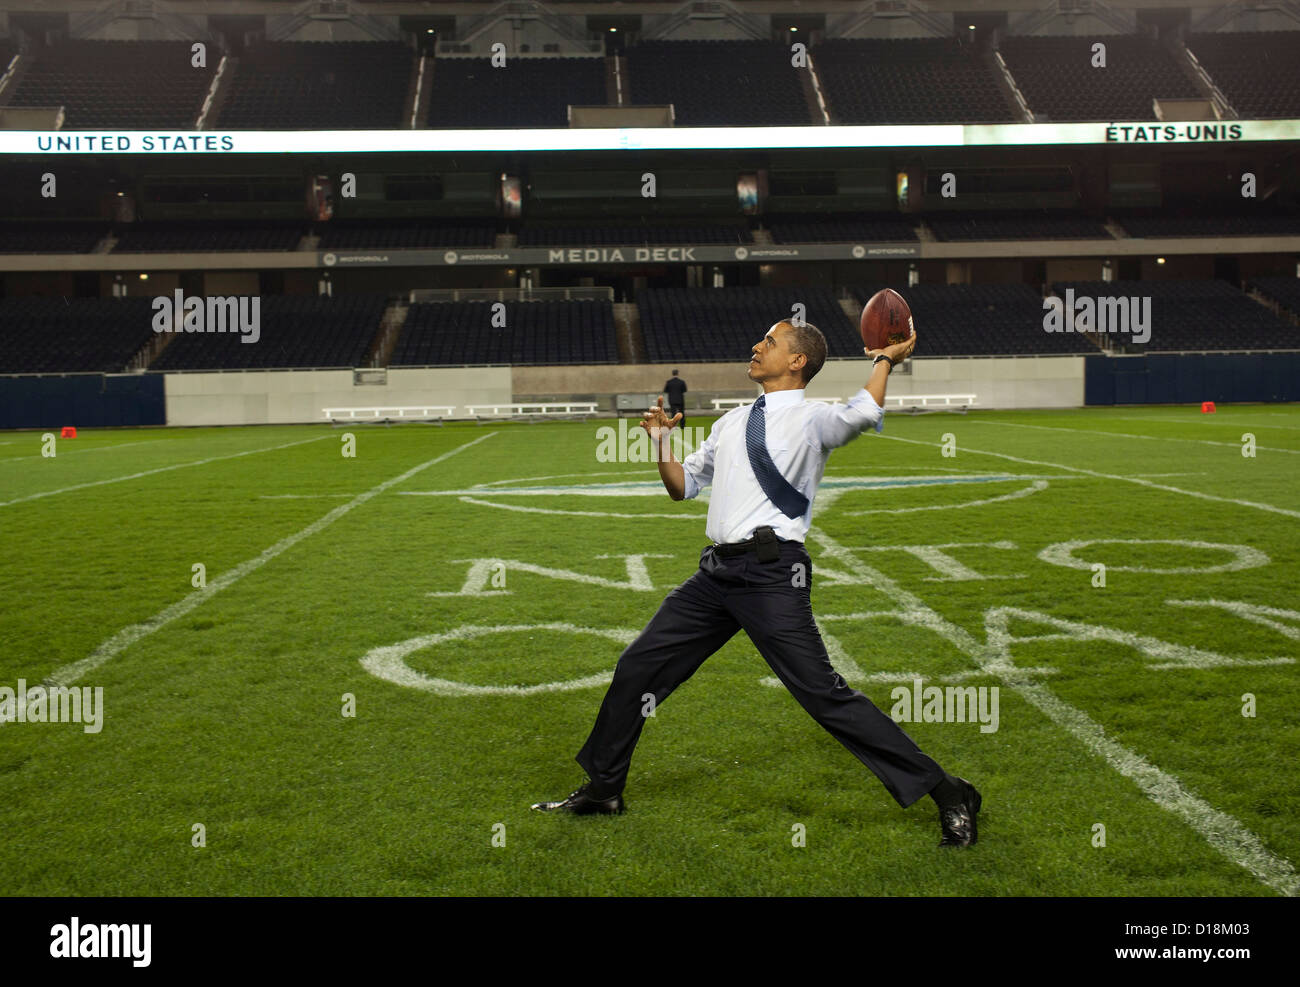 President Barack Obama throws a football on the field at Soldier Field following the NATO working dinner in Chicago, - Stock Image